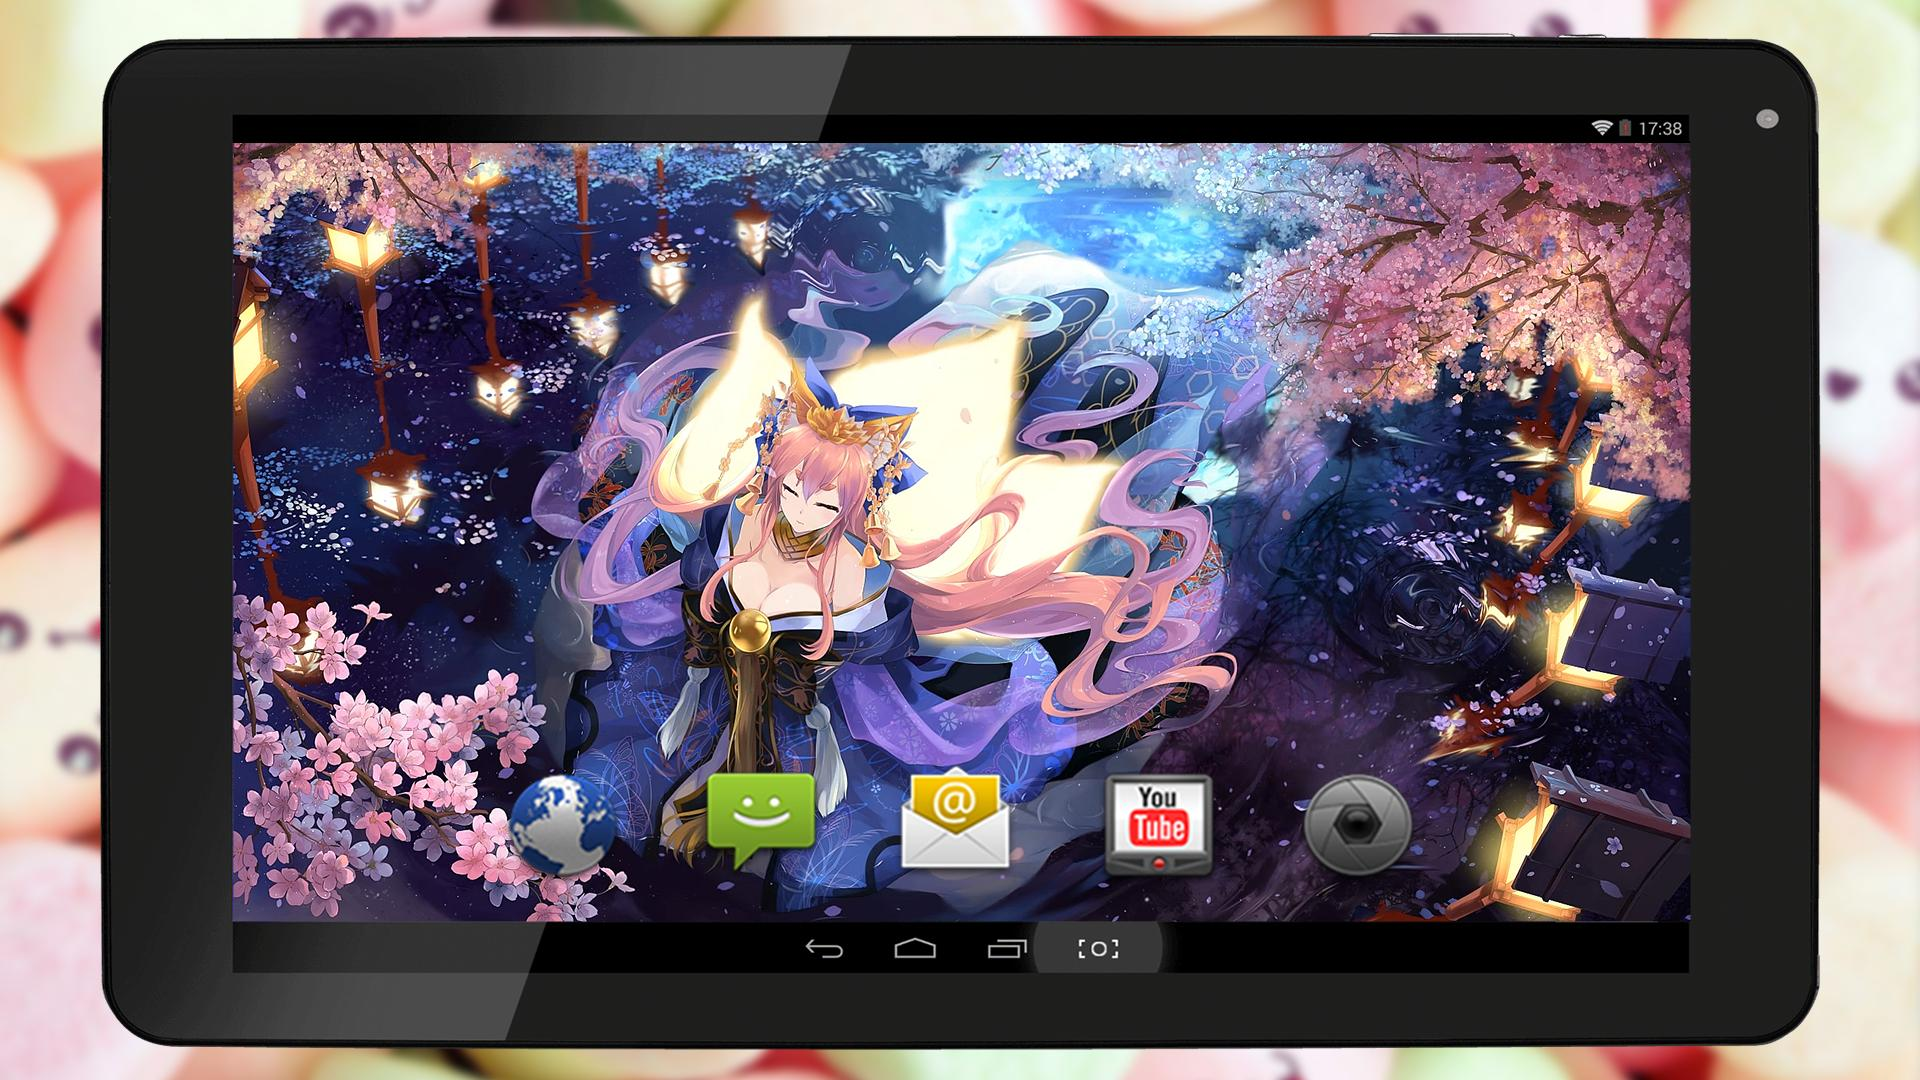 Fan Live Wallpaper Of Tamamo No Mae 玉藻の前 For Android Apk